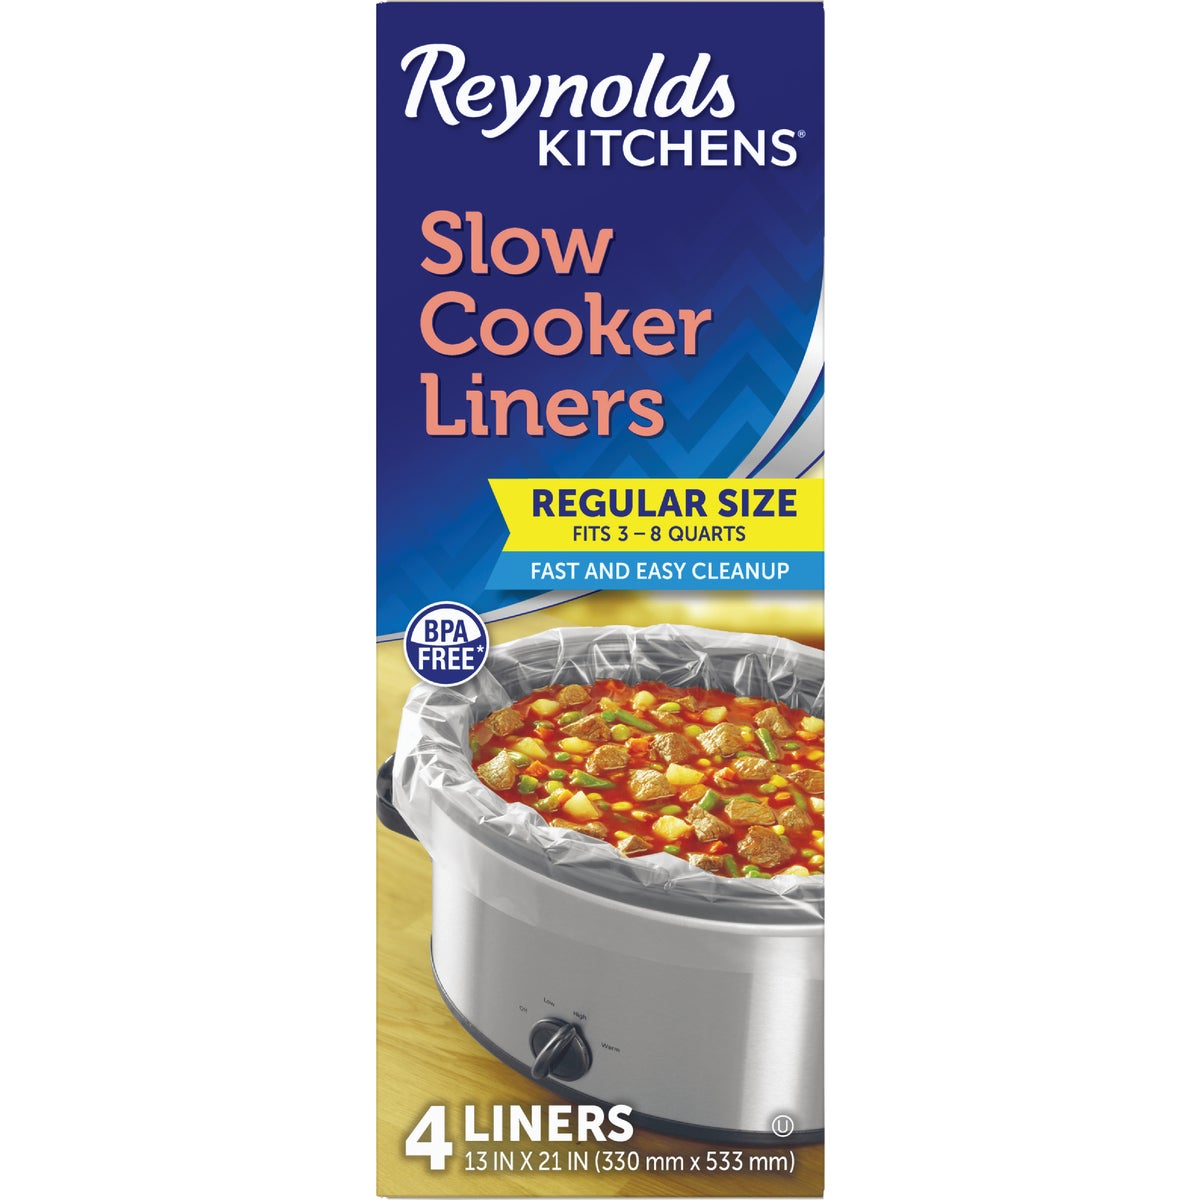 SLOW COOKER LINERS - 00504 by Reynolds Pkg. Group